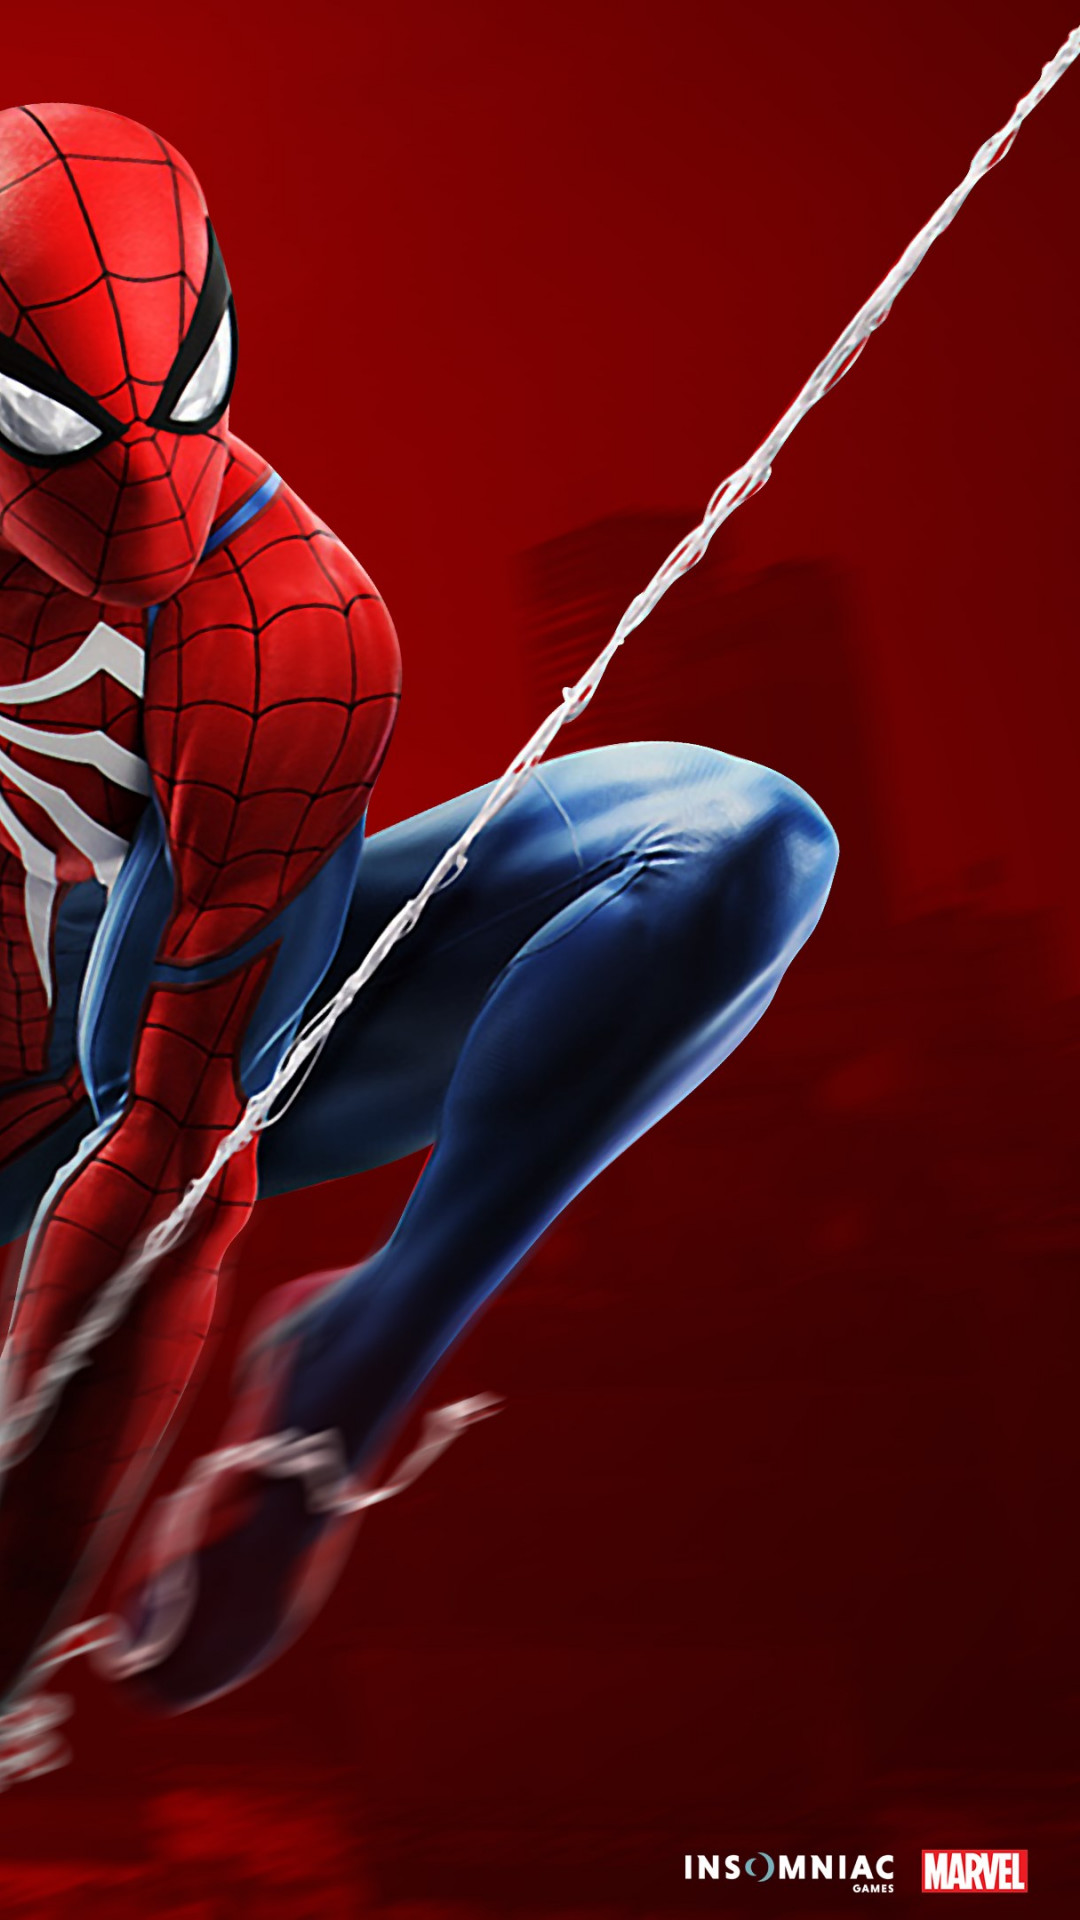 Download wallpaper Spider Man game on PS4 1080x1920 1080x1920